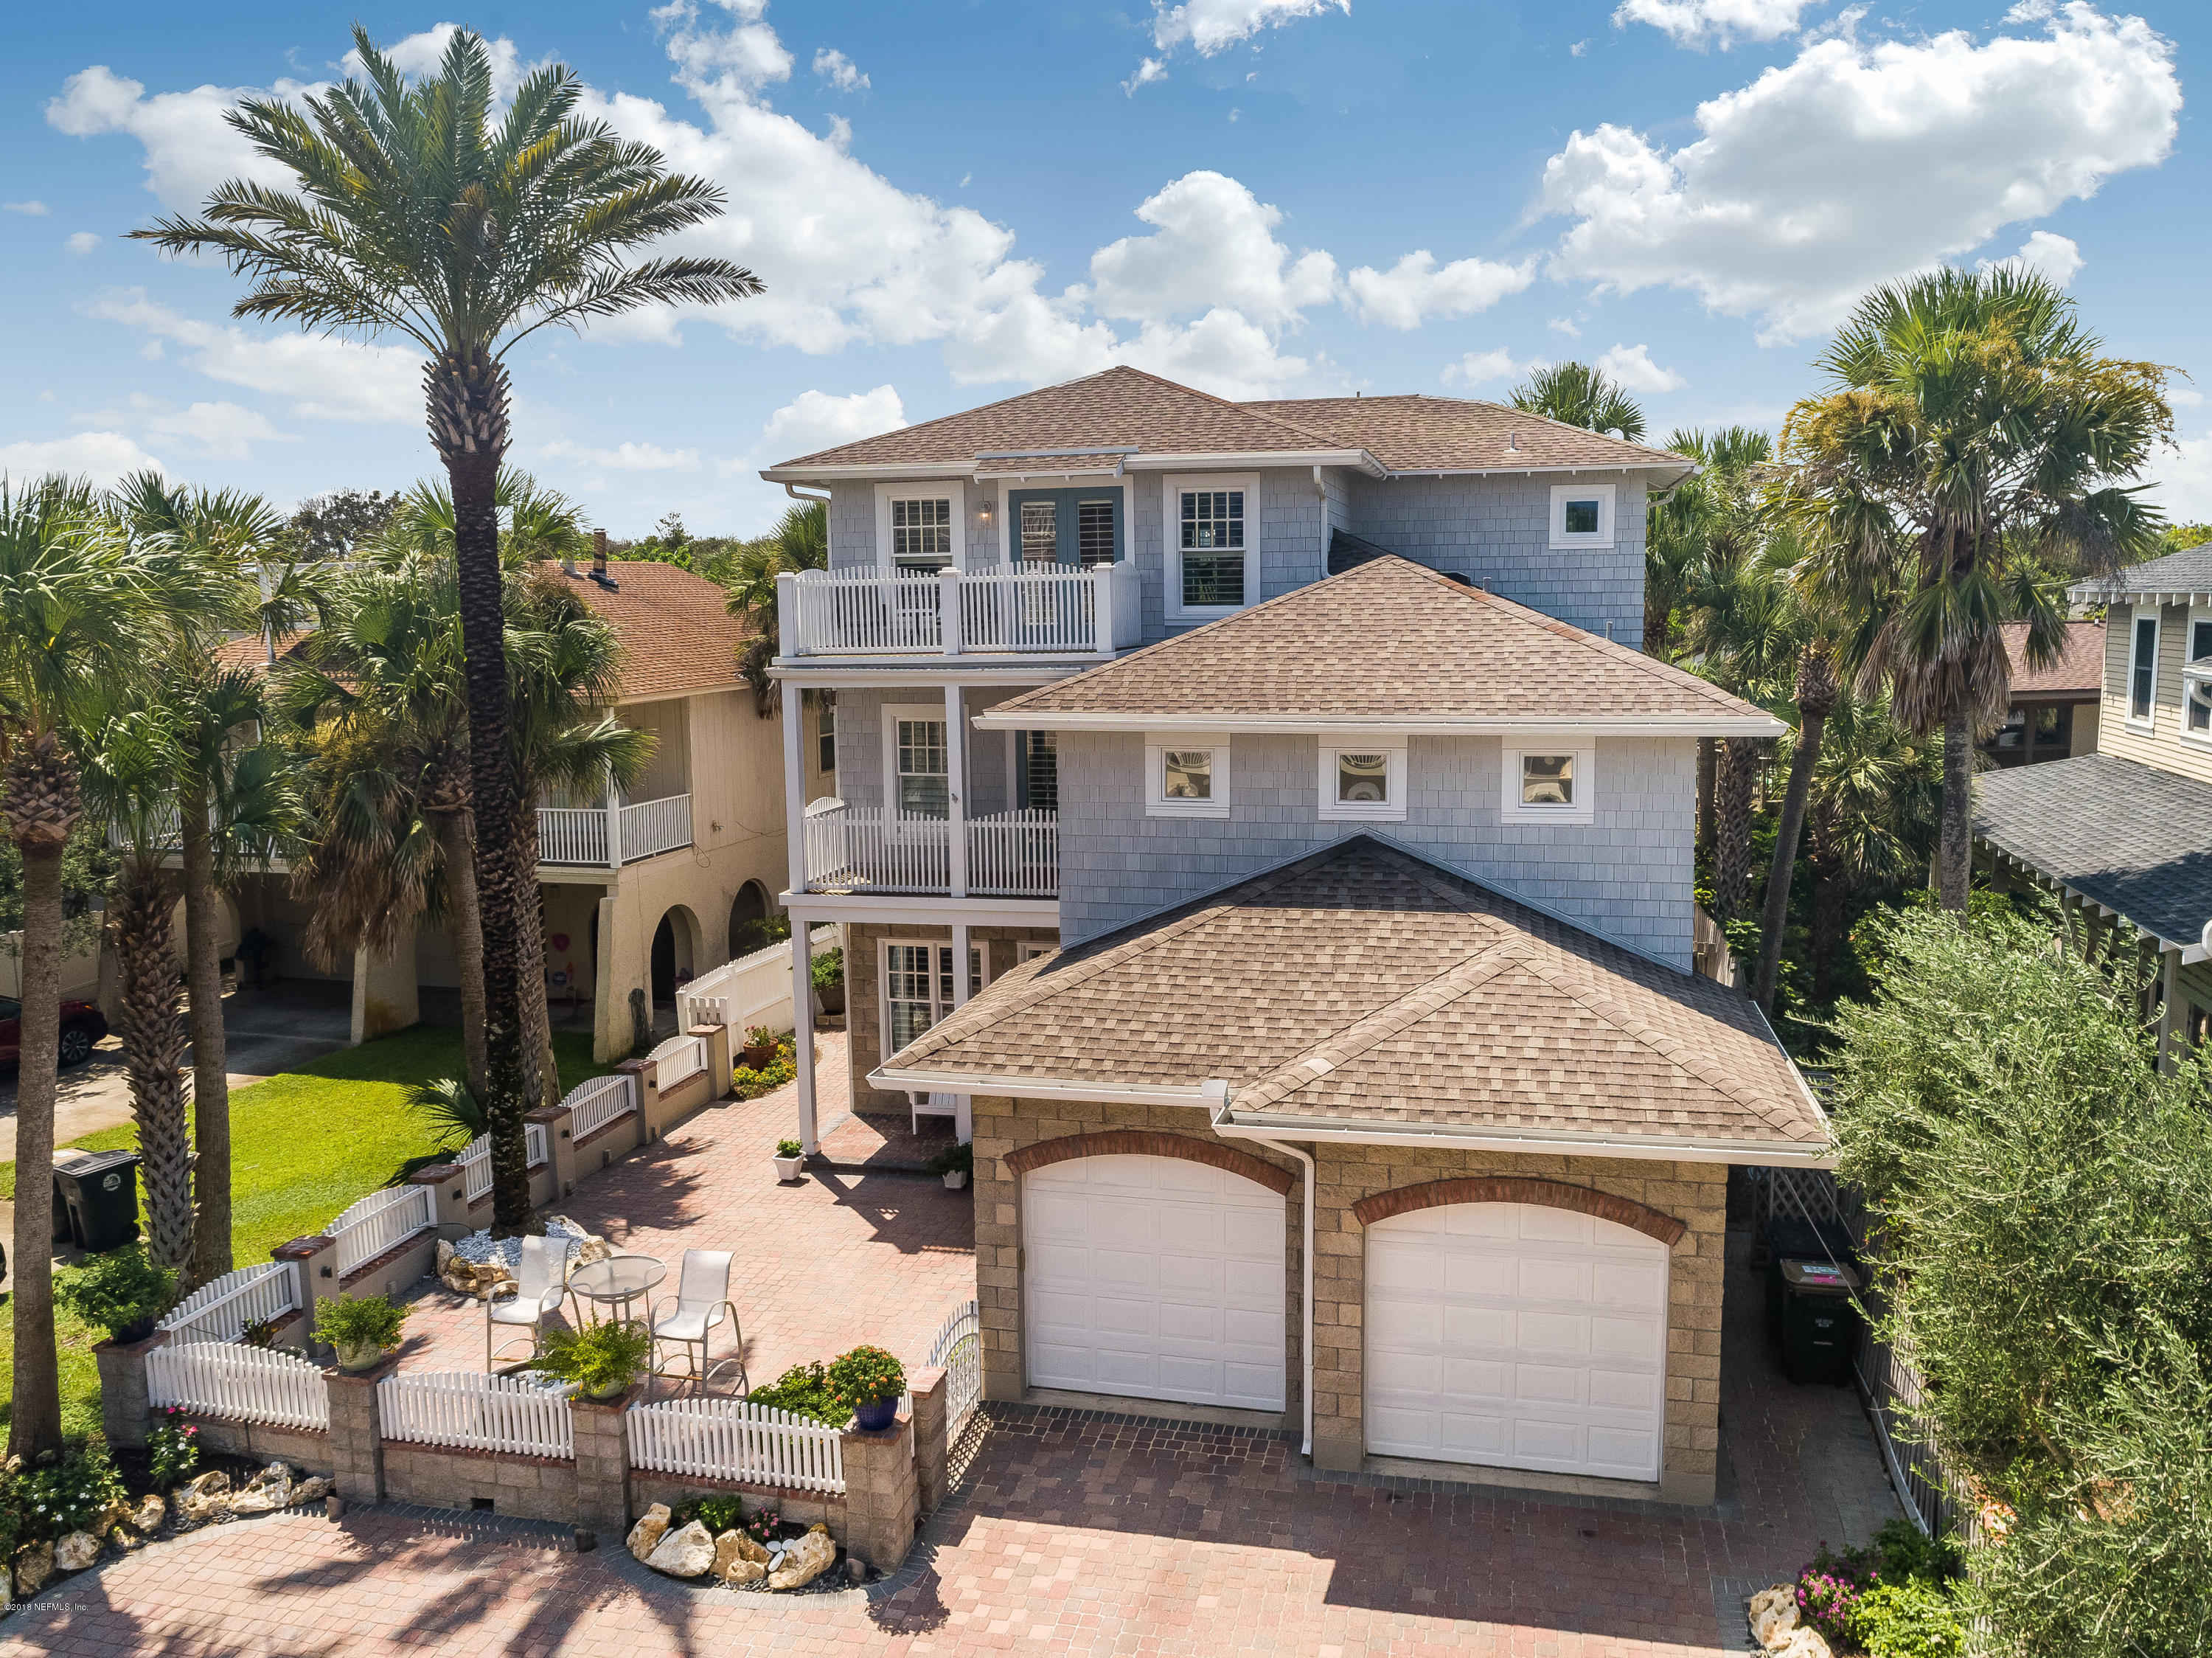 1628 BEACH, ATLANTIC BEACH, FLORIDA 32233, 5 Bedrooms Bedrooms, ,4 BathroomsBathrooms,Residential - single family,For sale,BEACH,954552